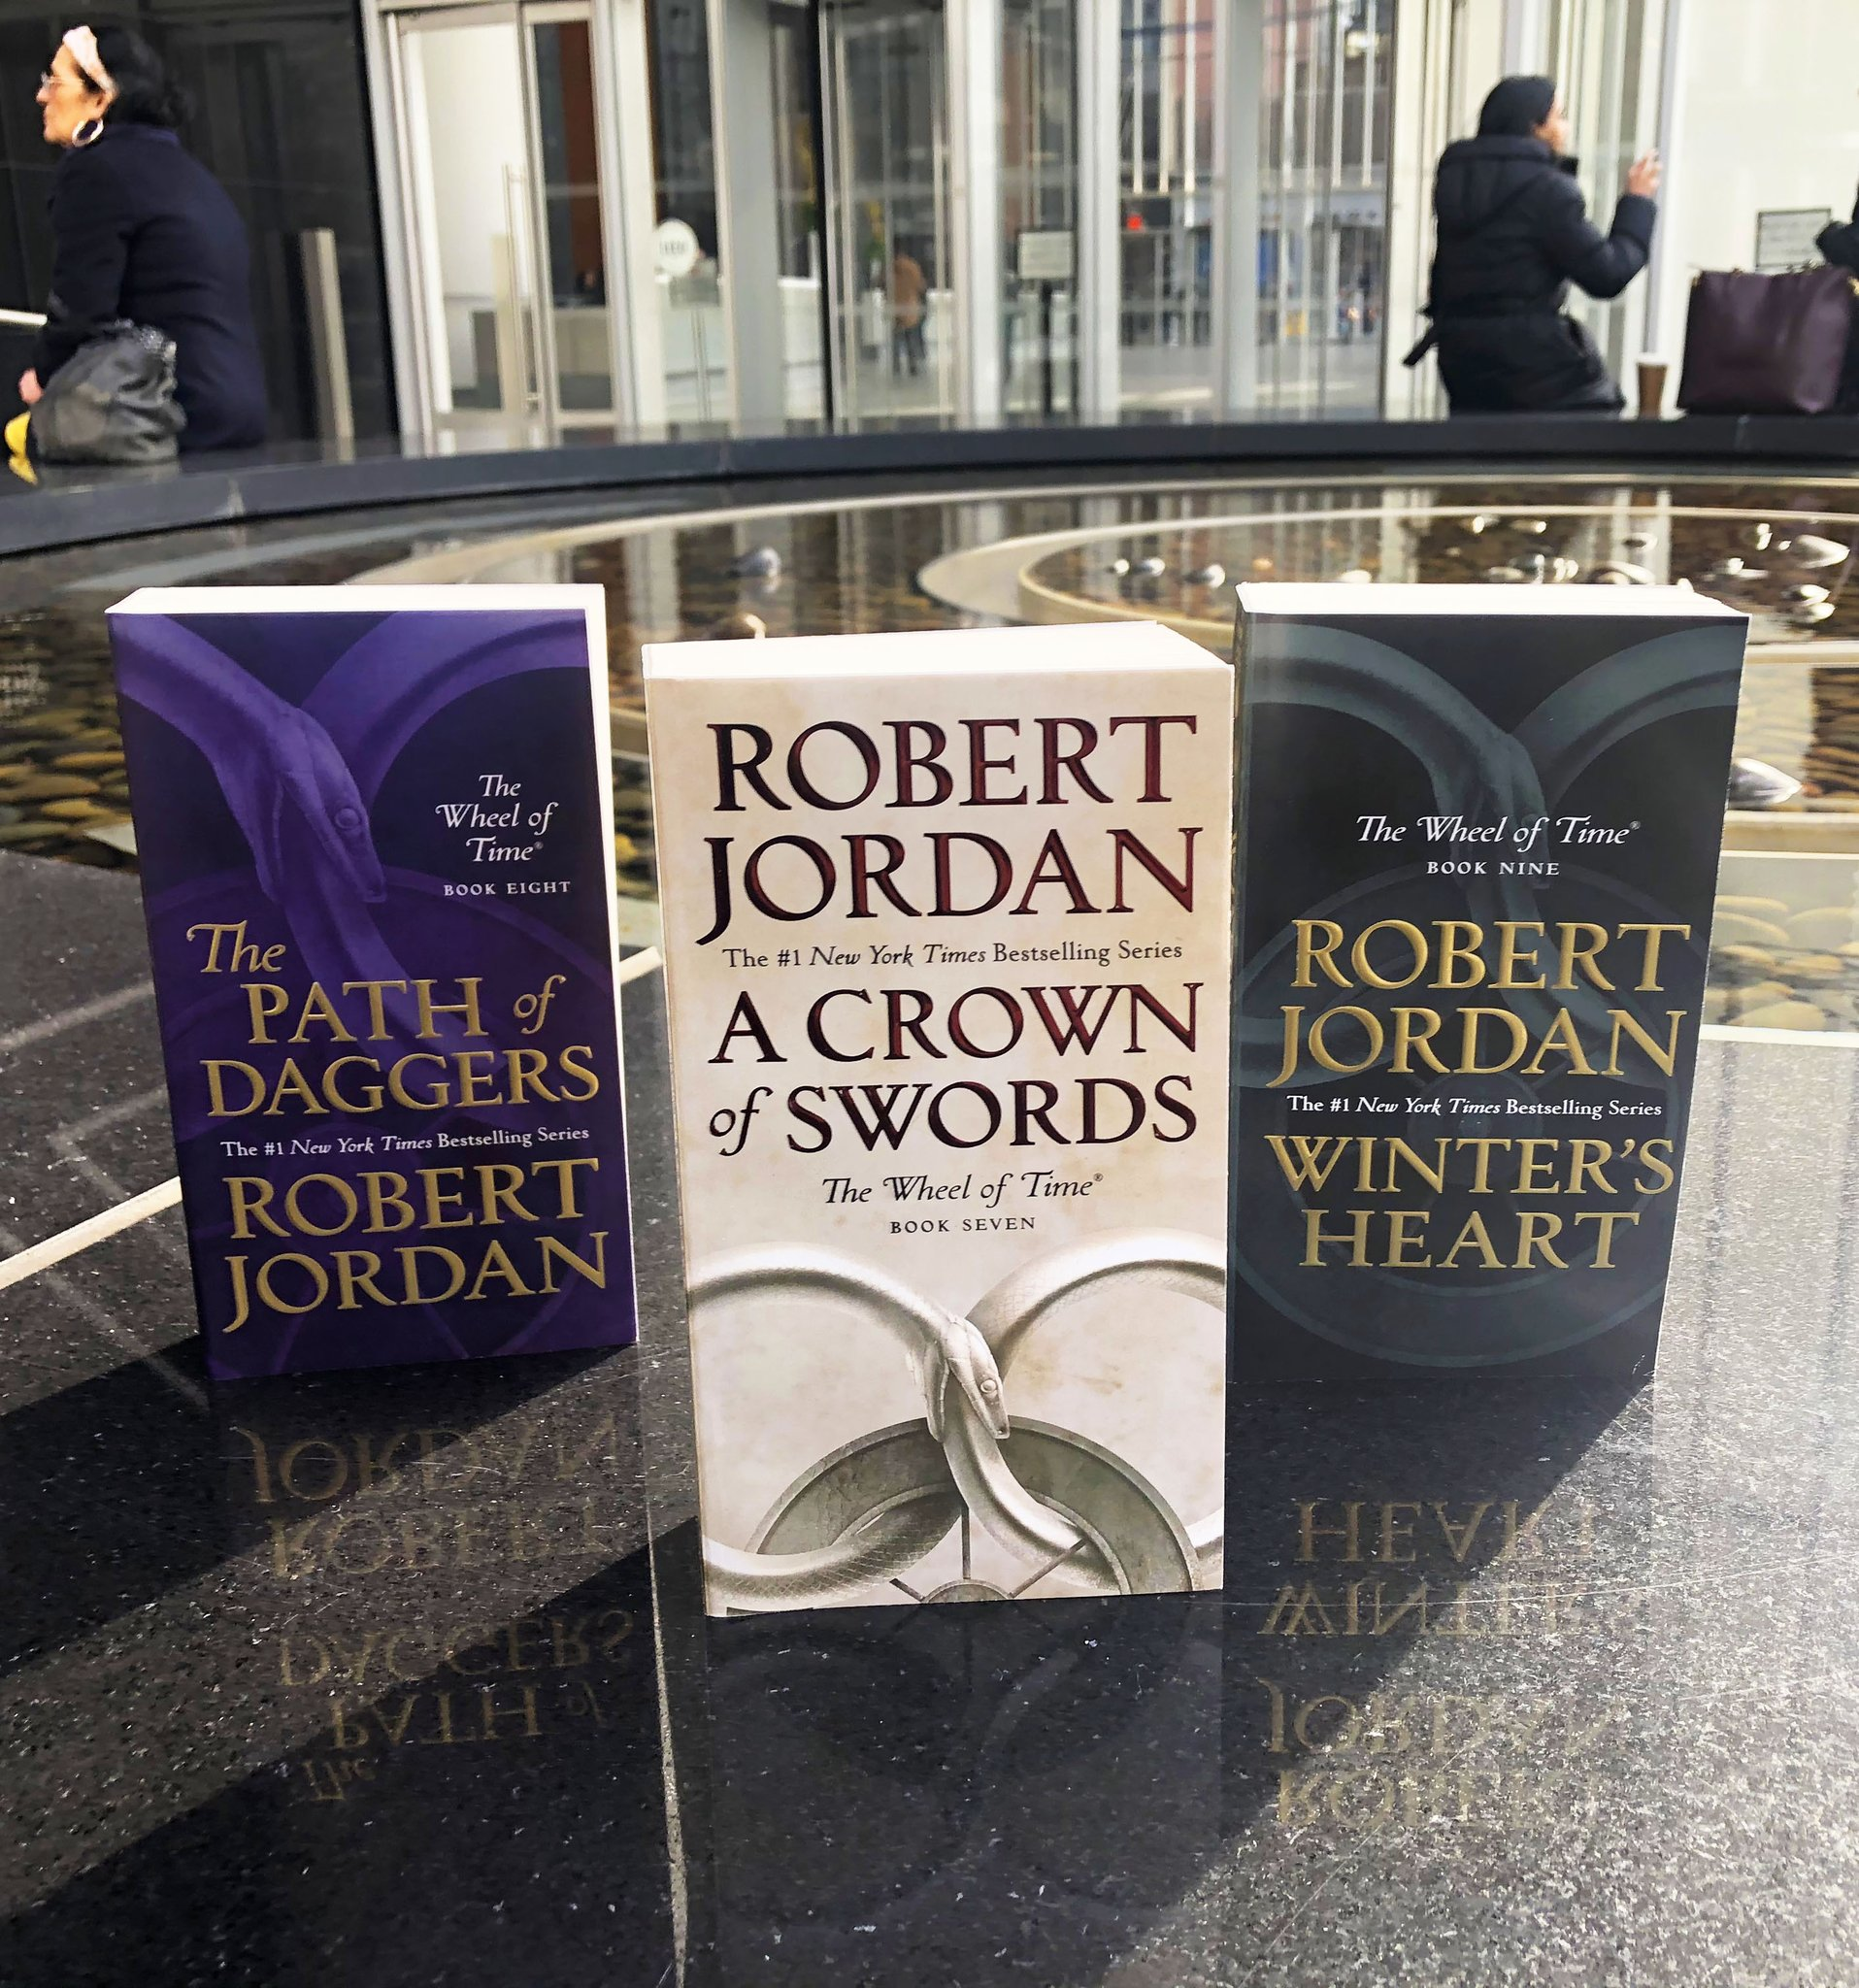 Tor Books On Twitter The Wheel Of Time Turns And Ages Come And Go Leaving Memories That Become Legend Continue The Saga With Acrownofswords Thepathofdaggers And Wintersheart By Robert Jordan Now Available